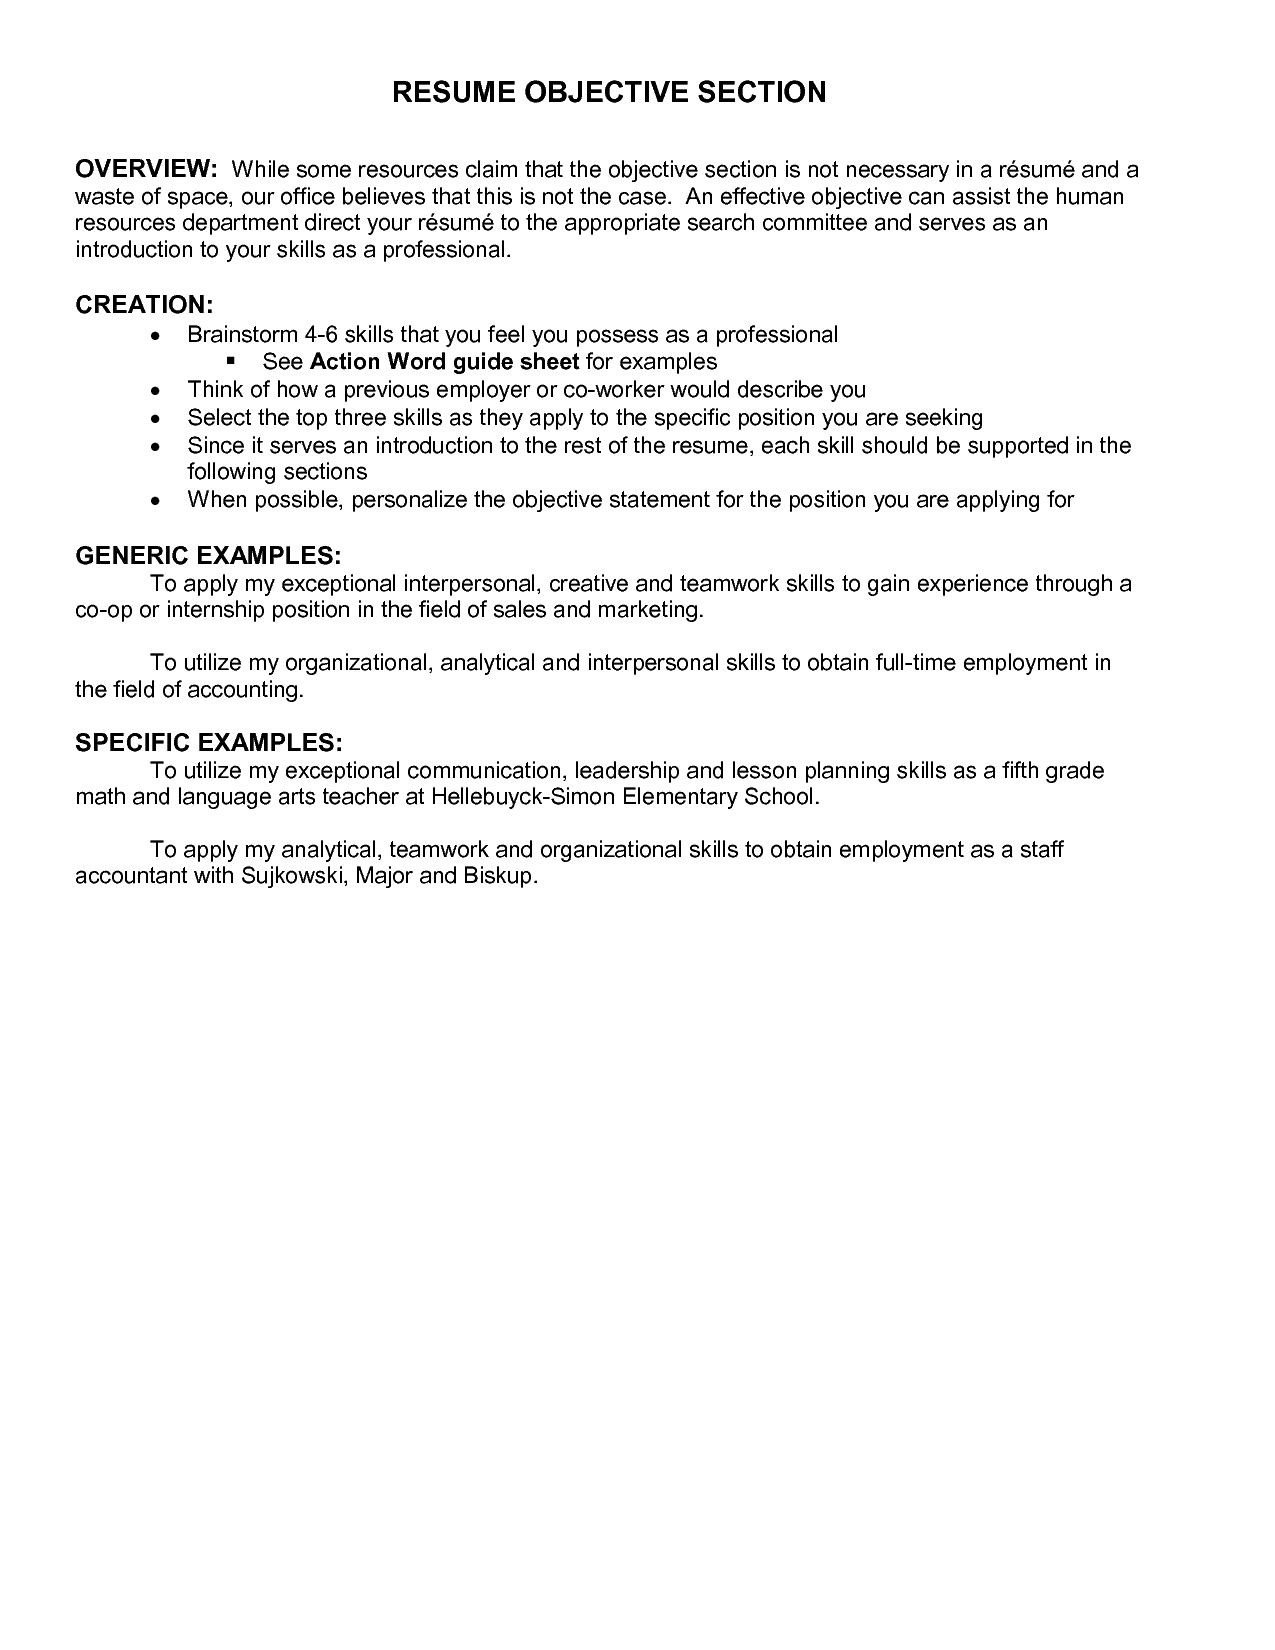 Sample Resume Objective Statement Resume Objectives Best Templateresume Objective Examples